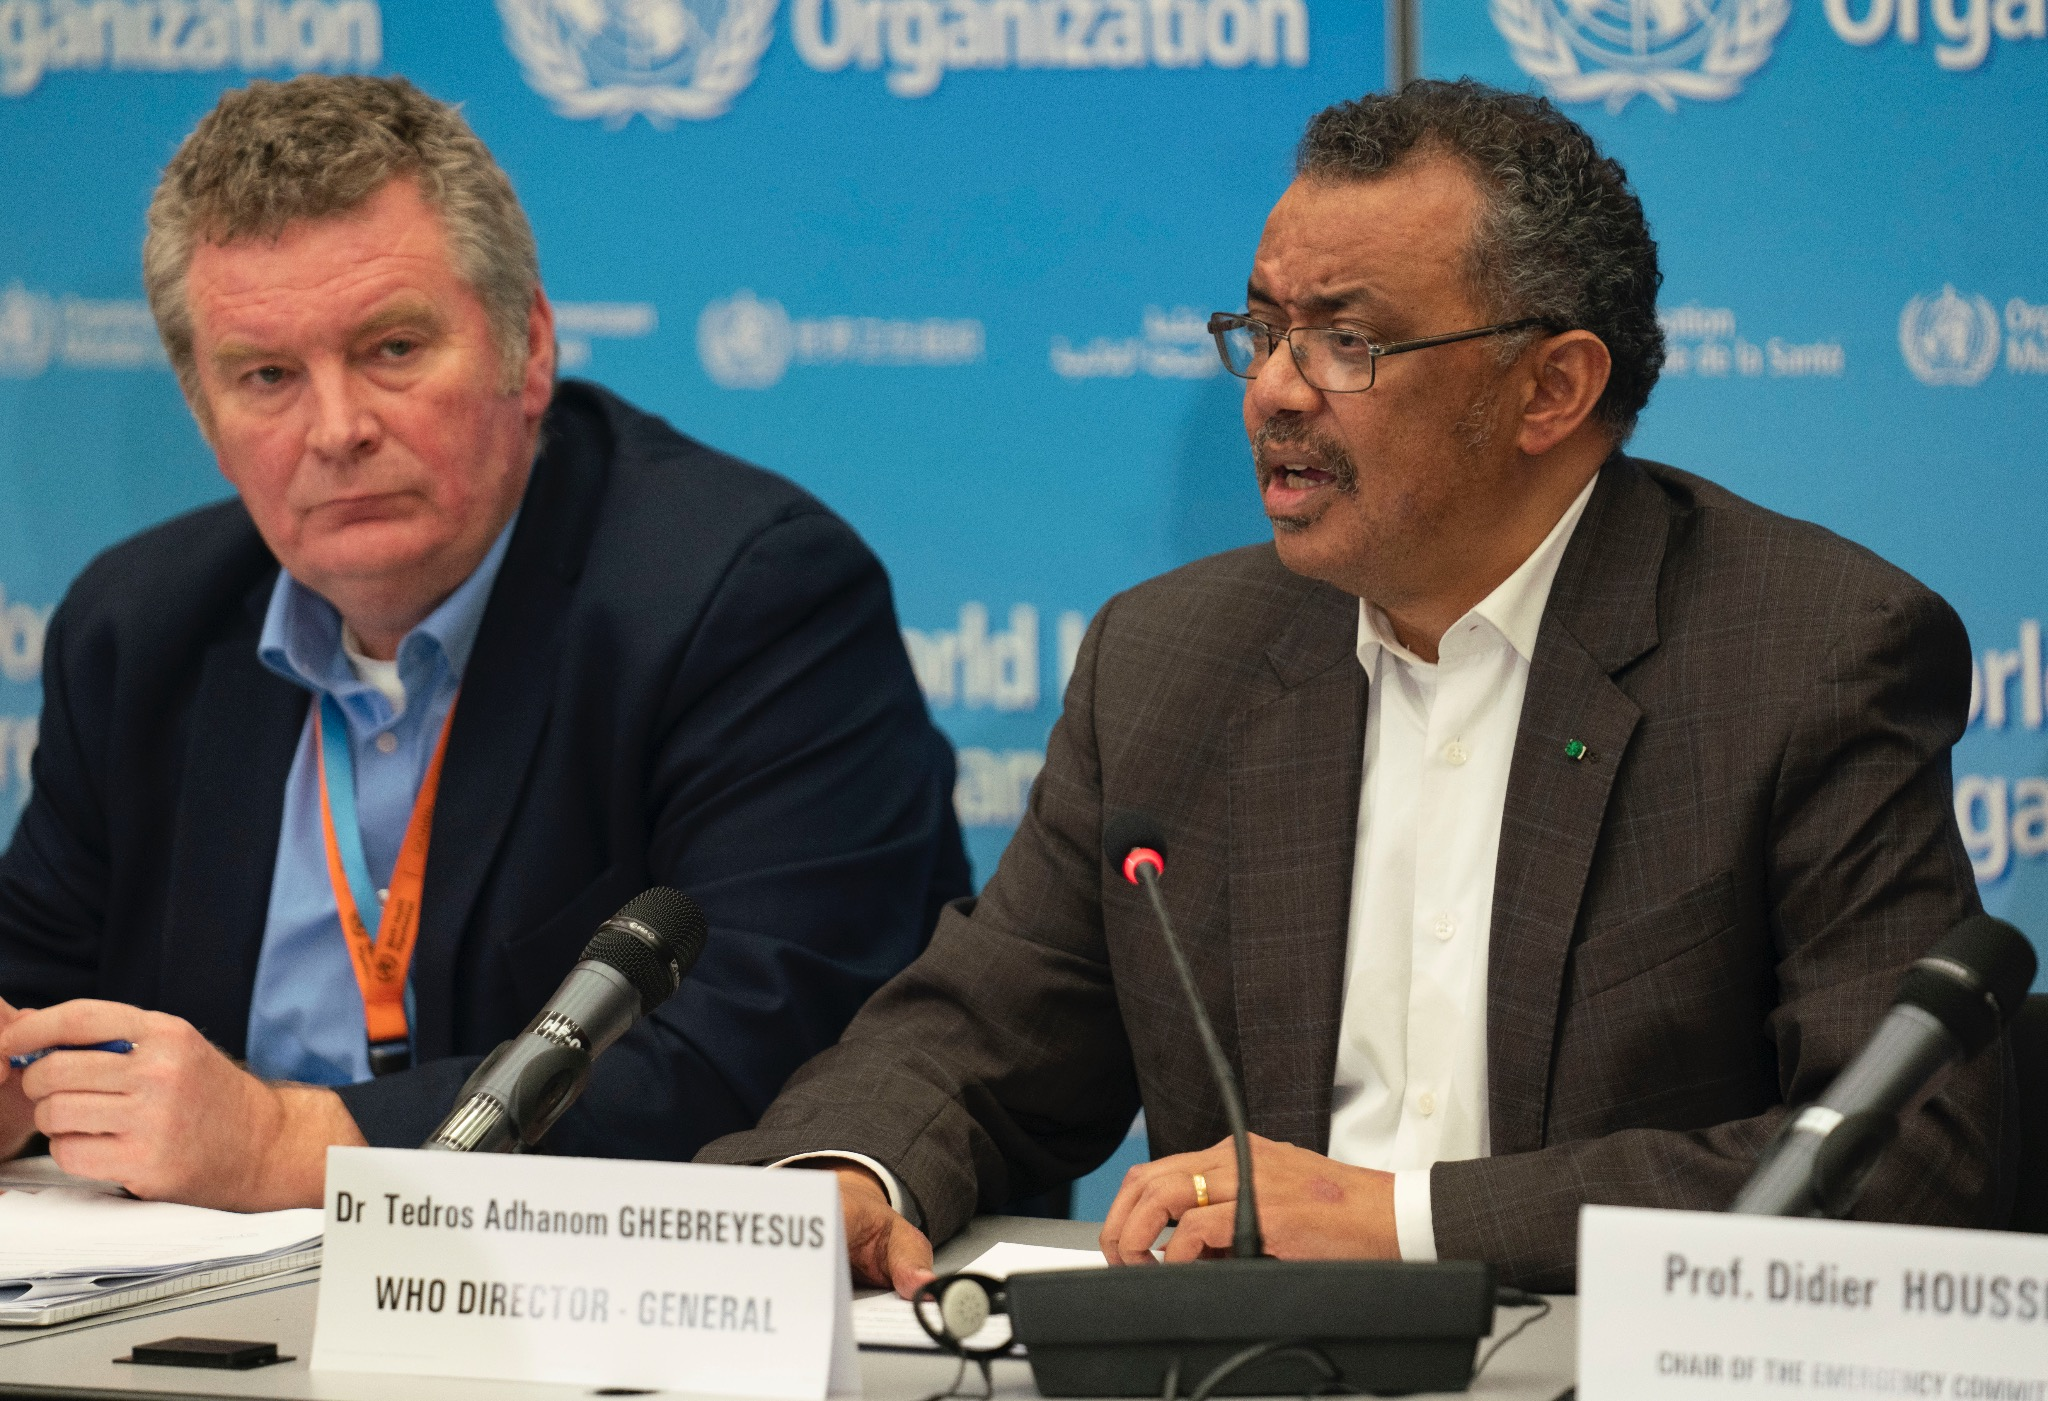 WHO Director General Tedros Adhanom Ghebreyesus said that he regretted the US President's decision to cut funding to the global health body. Photo courtesy: Twitter/@WHO